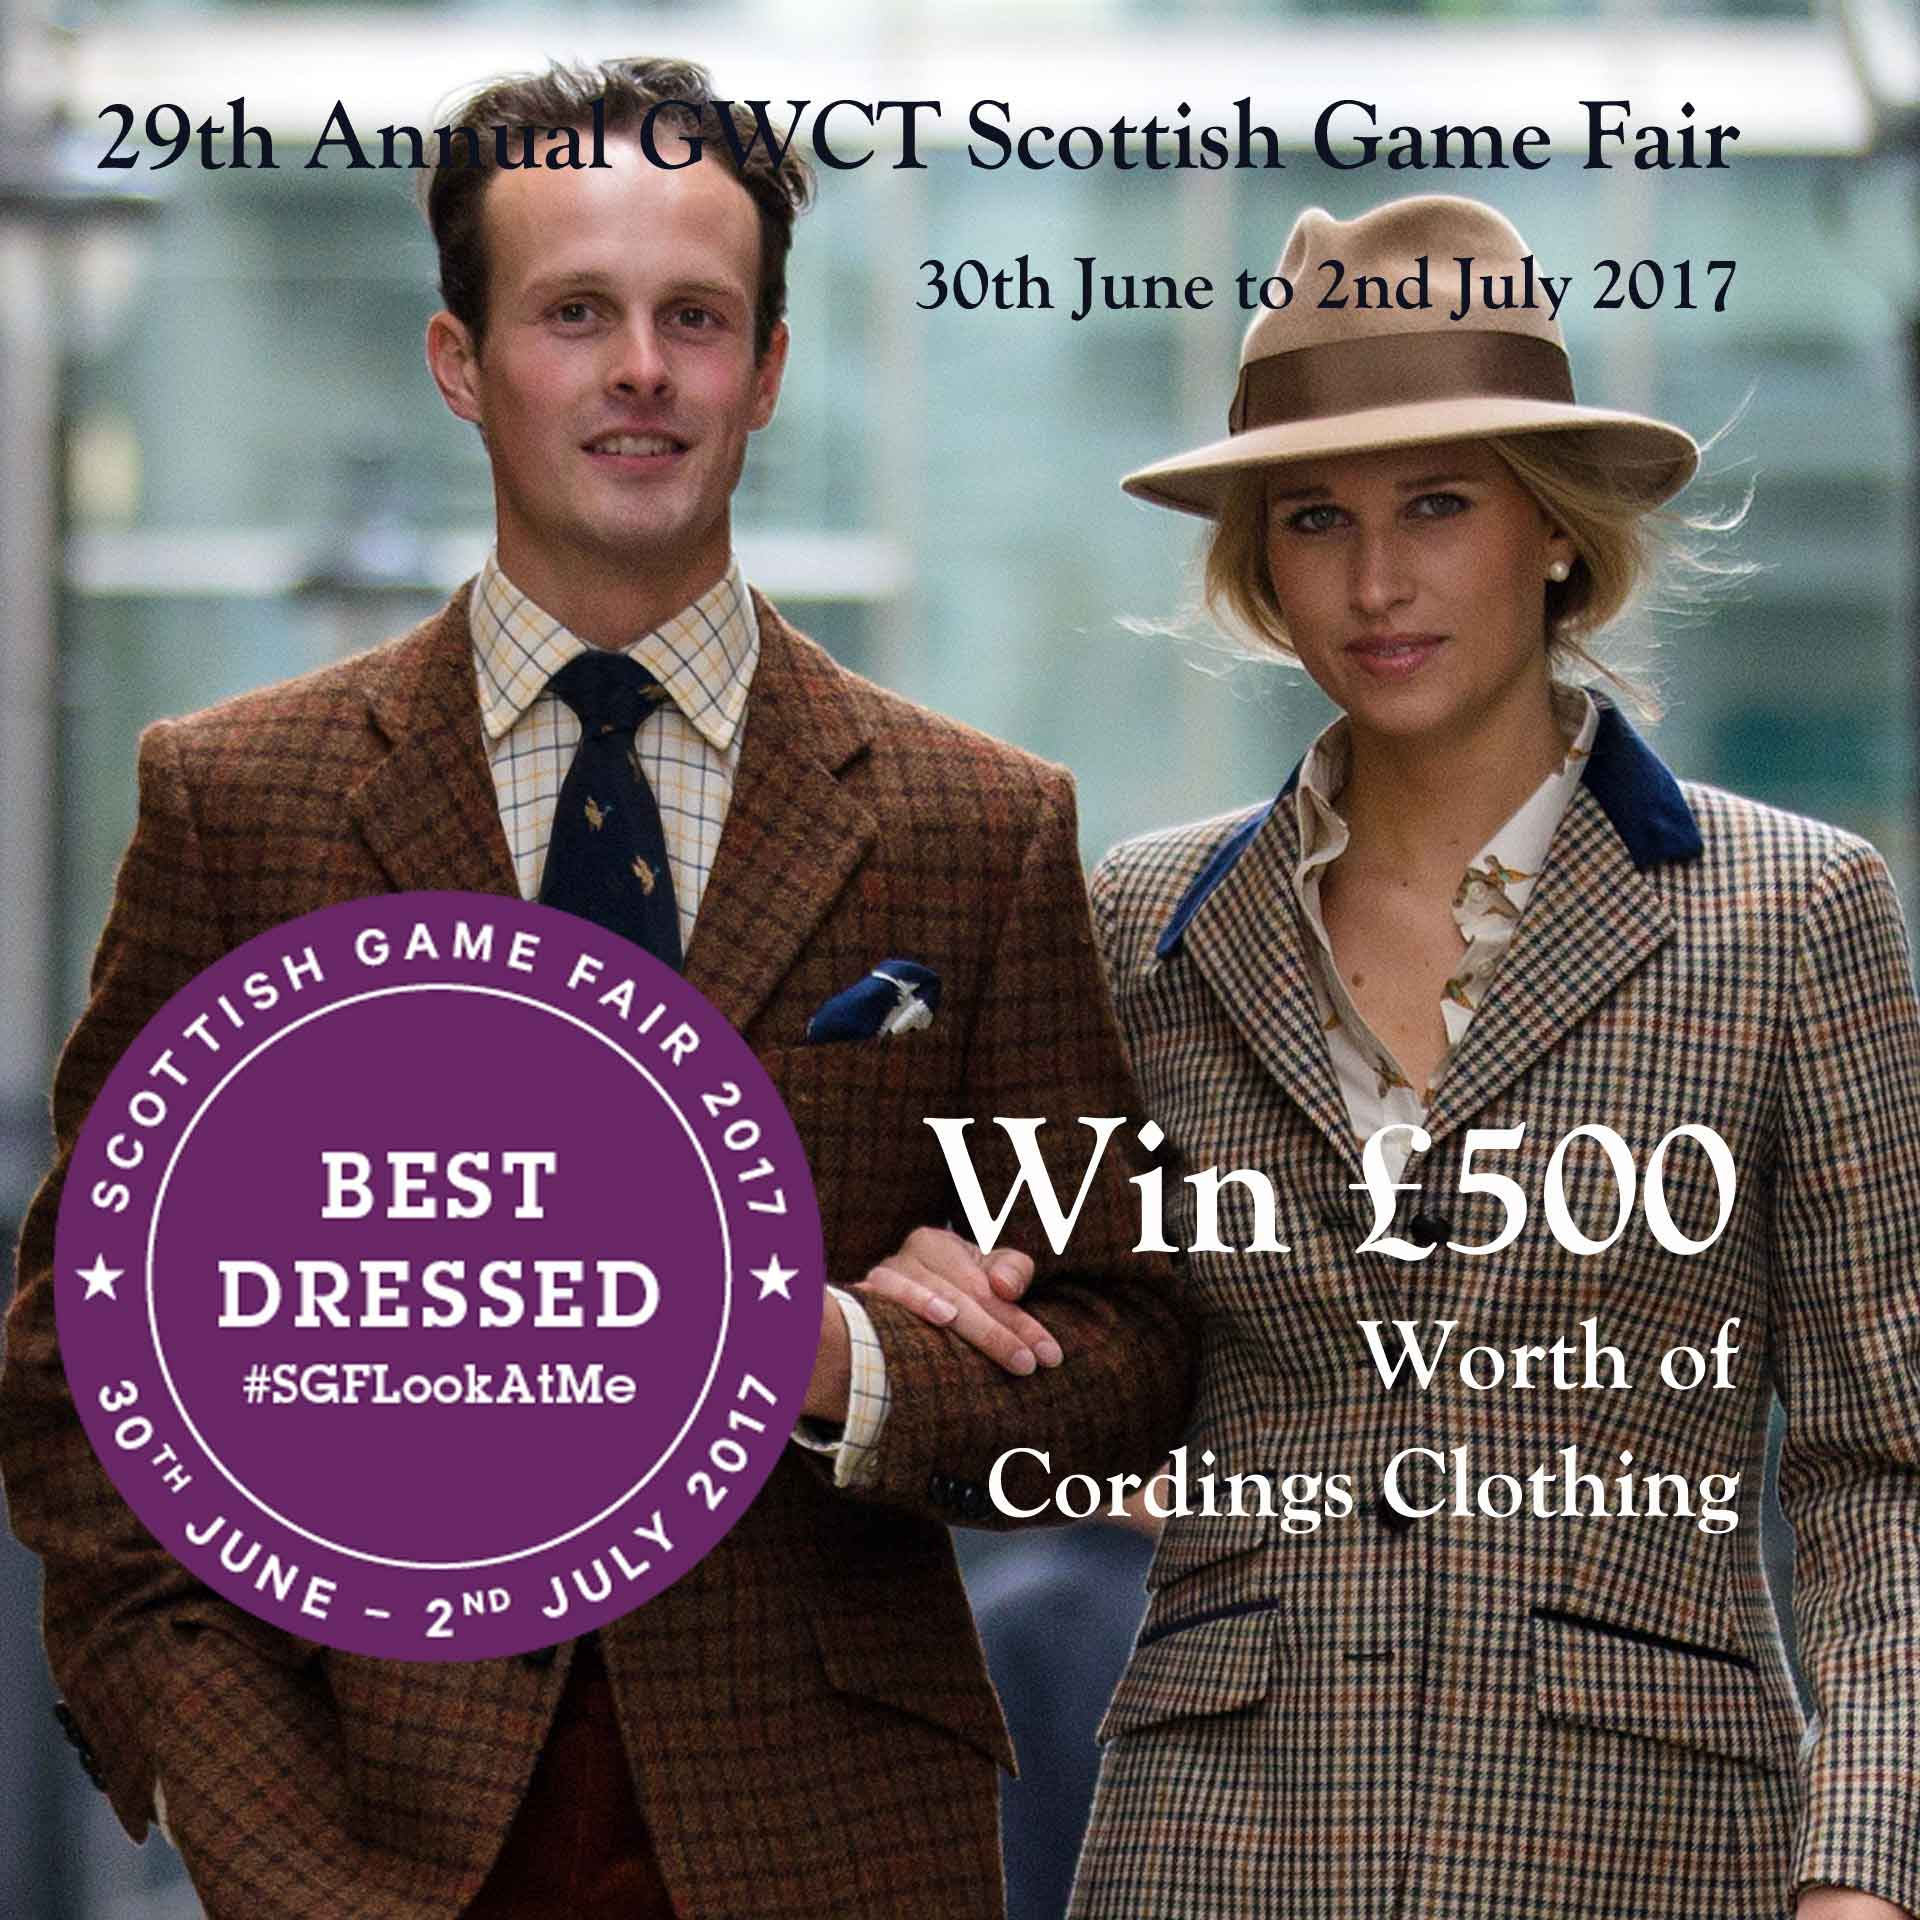 Win £500 of Cordings clothing at The Scottish Game Fair